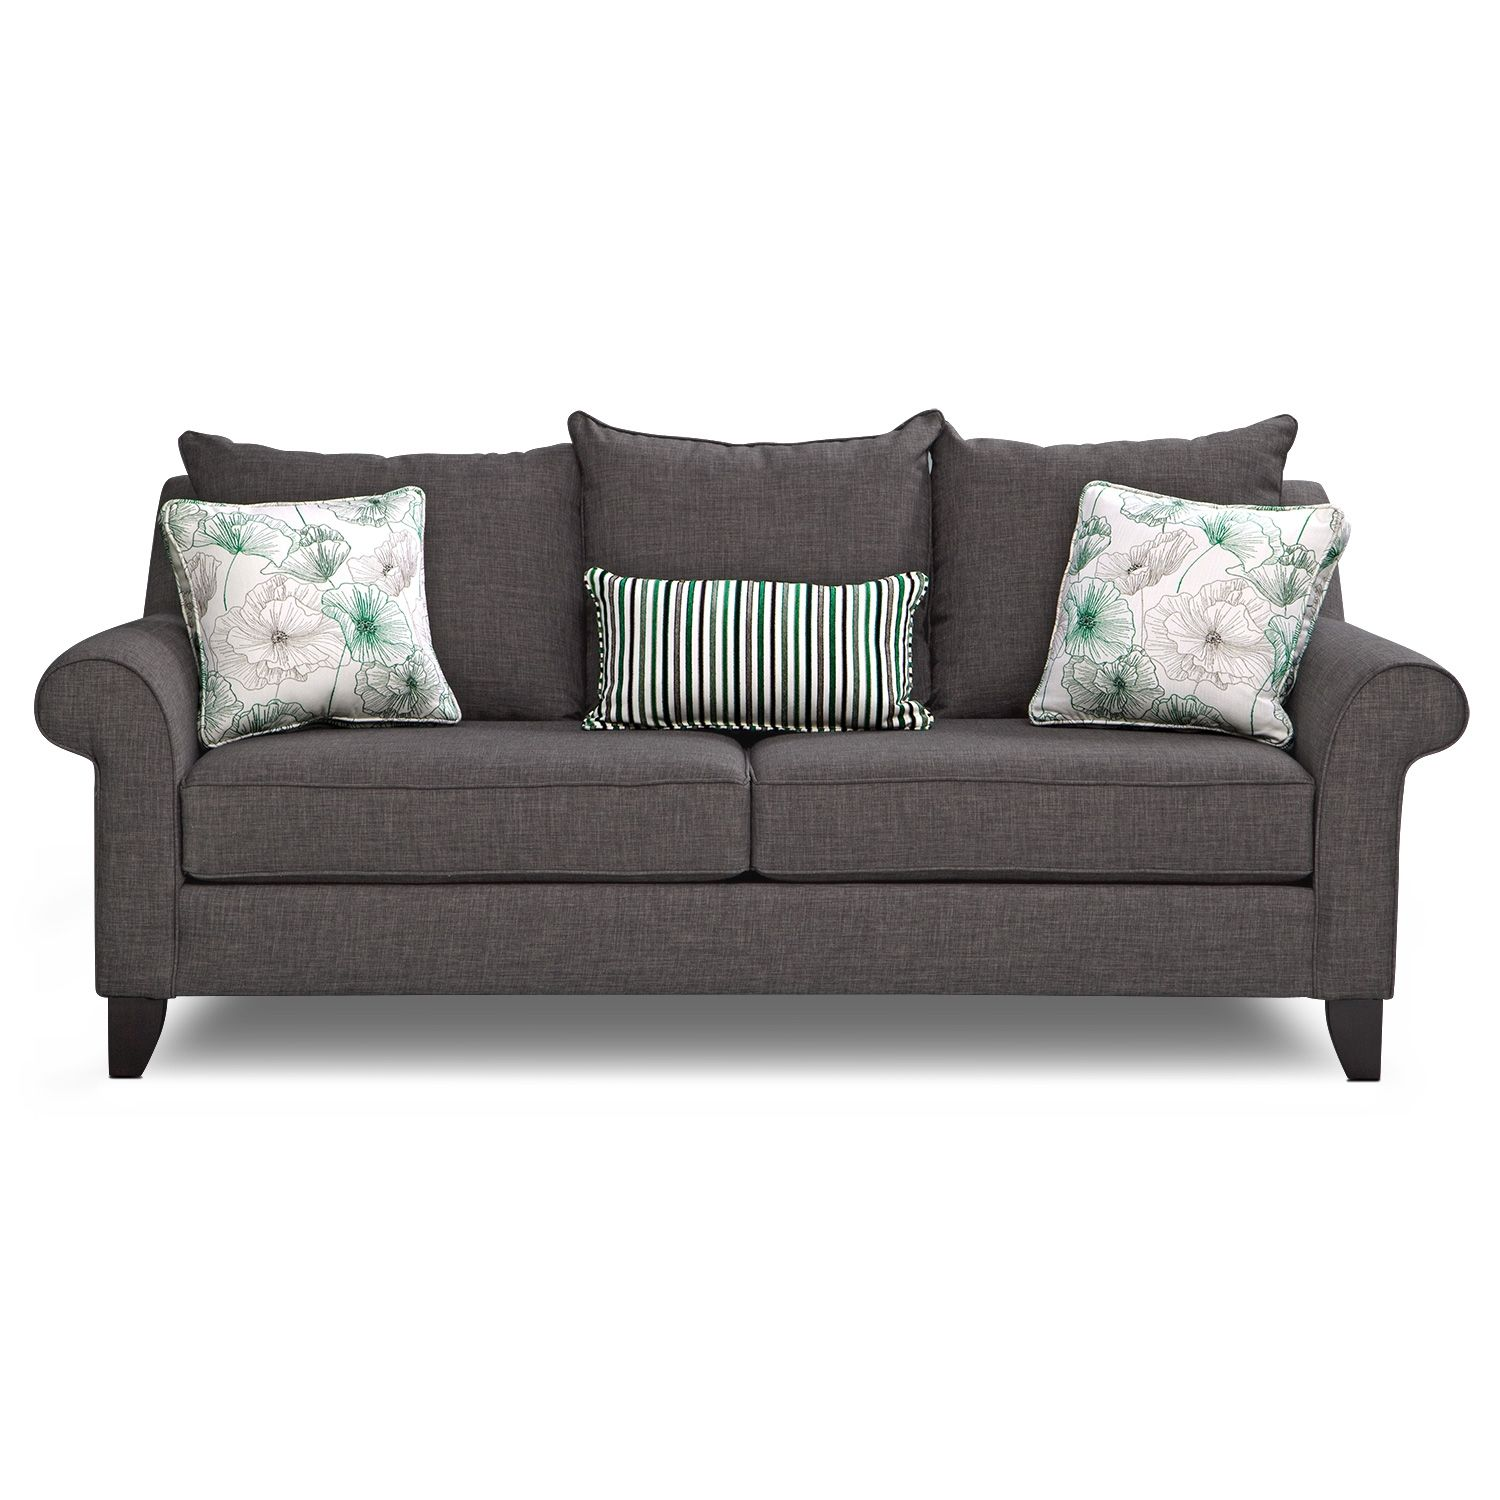 Living Room Furniture Jasmine Queen Sleeper Sofa